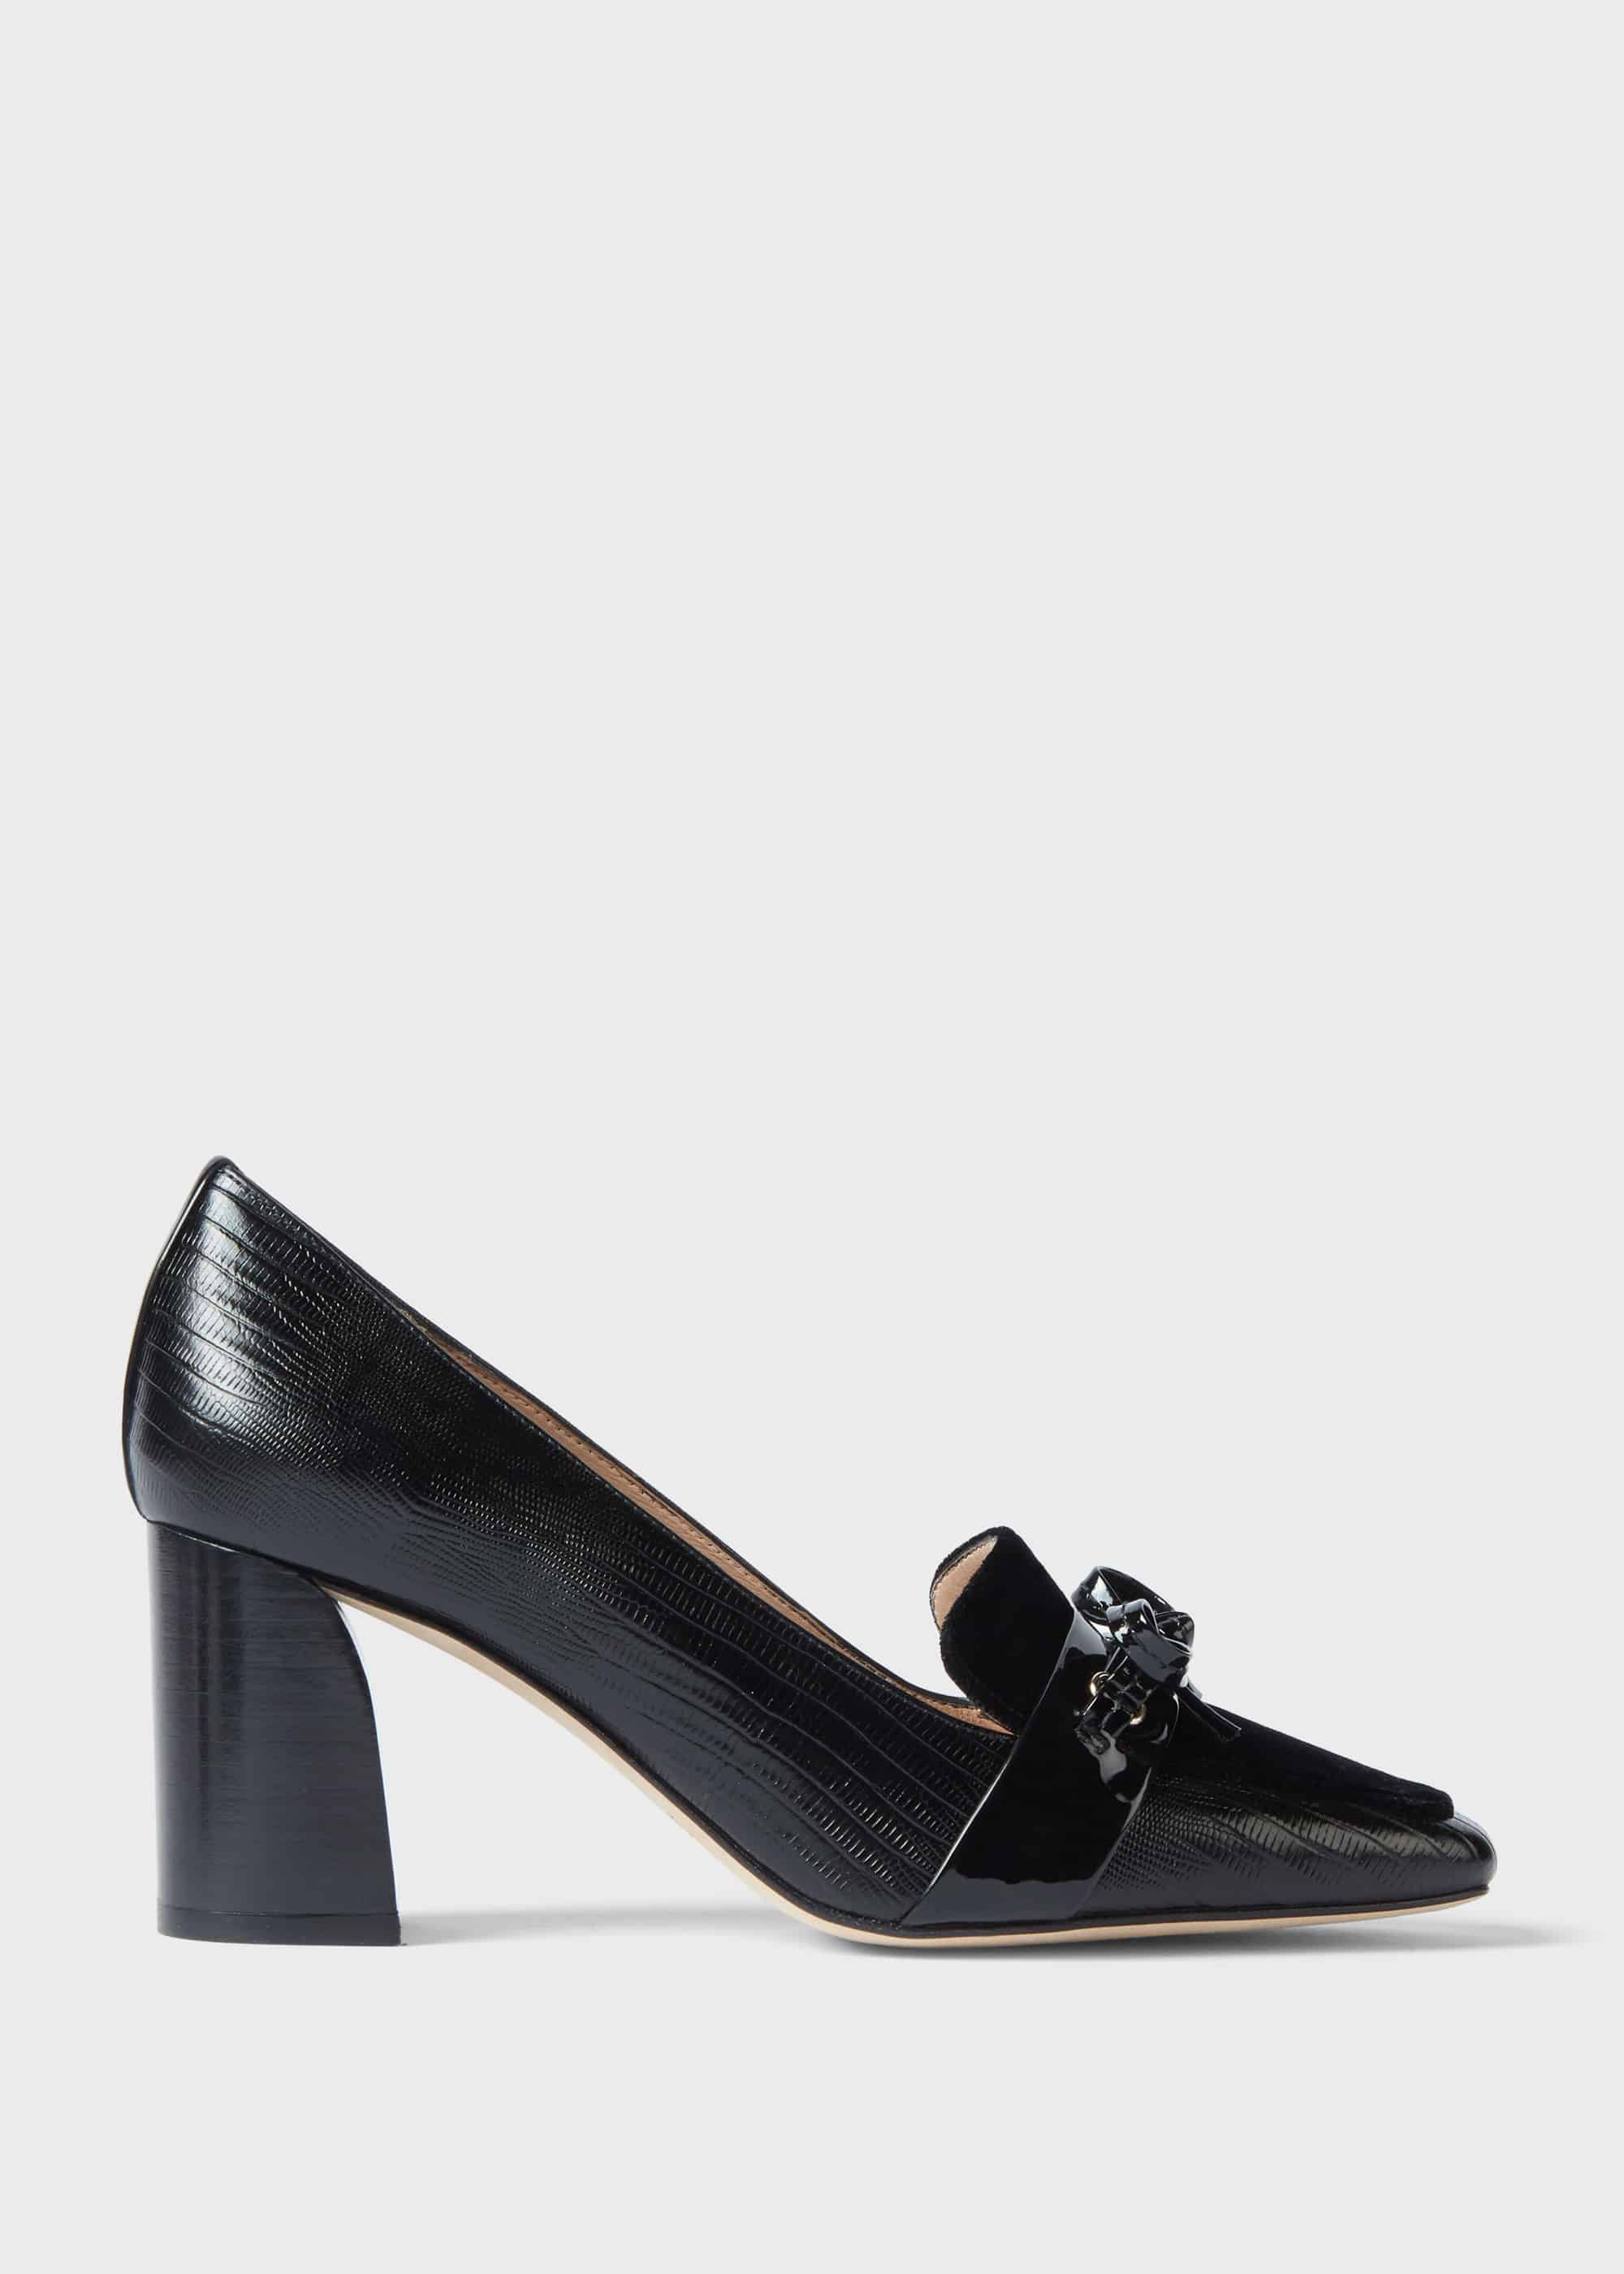 Hobbs Women Katherine Leather Reptile Court Shoes